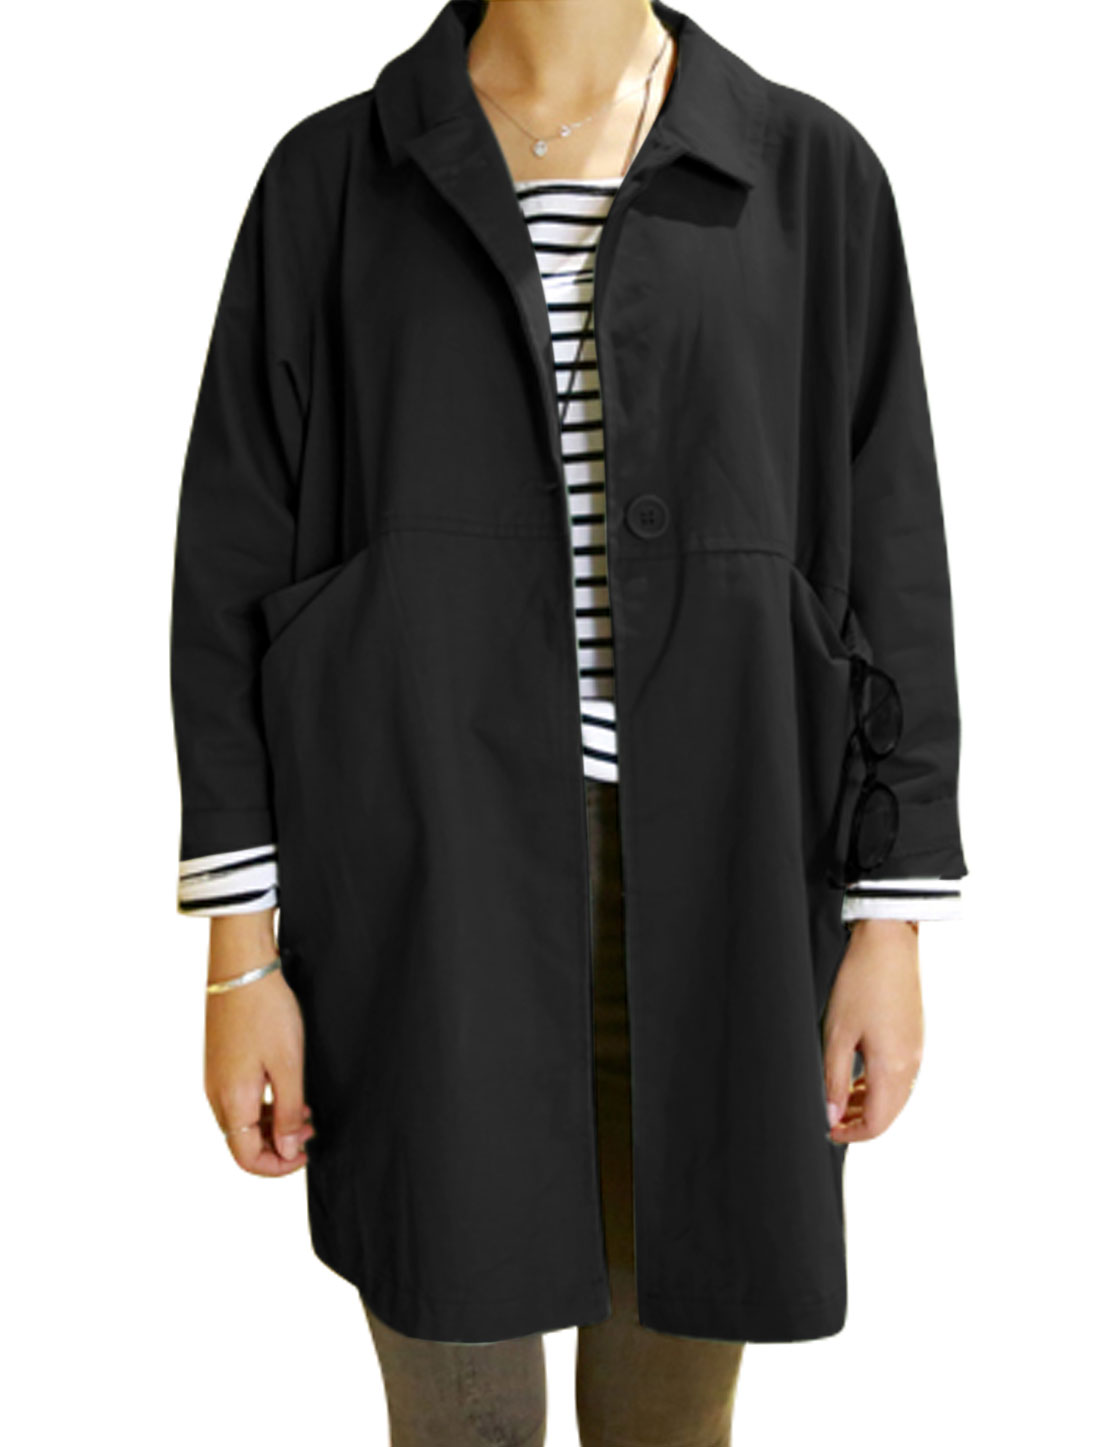 Women Turn Down Collar Long Sleeve Casual Trench Jacket Black S